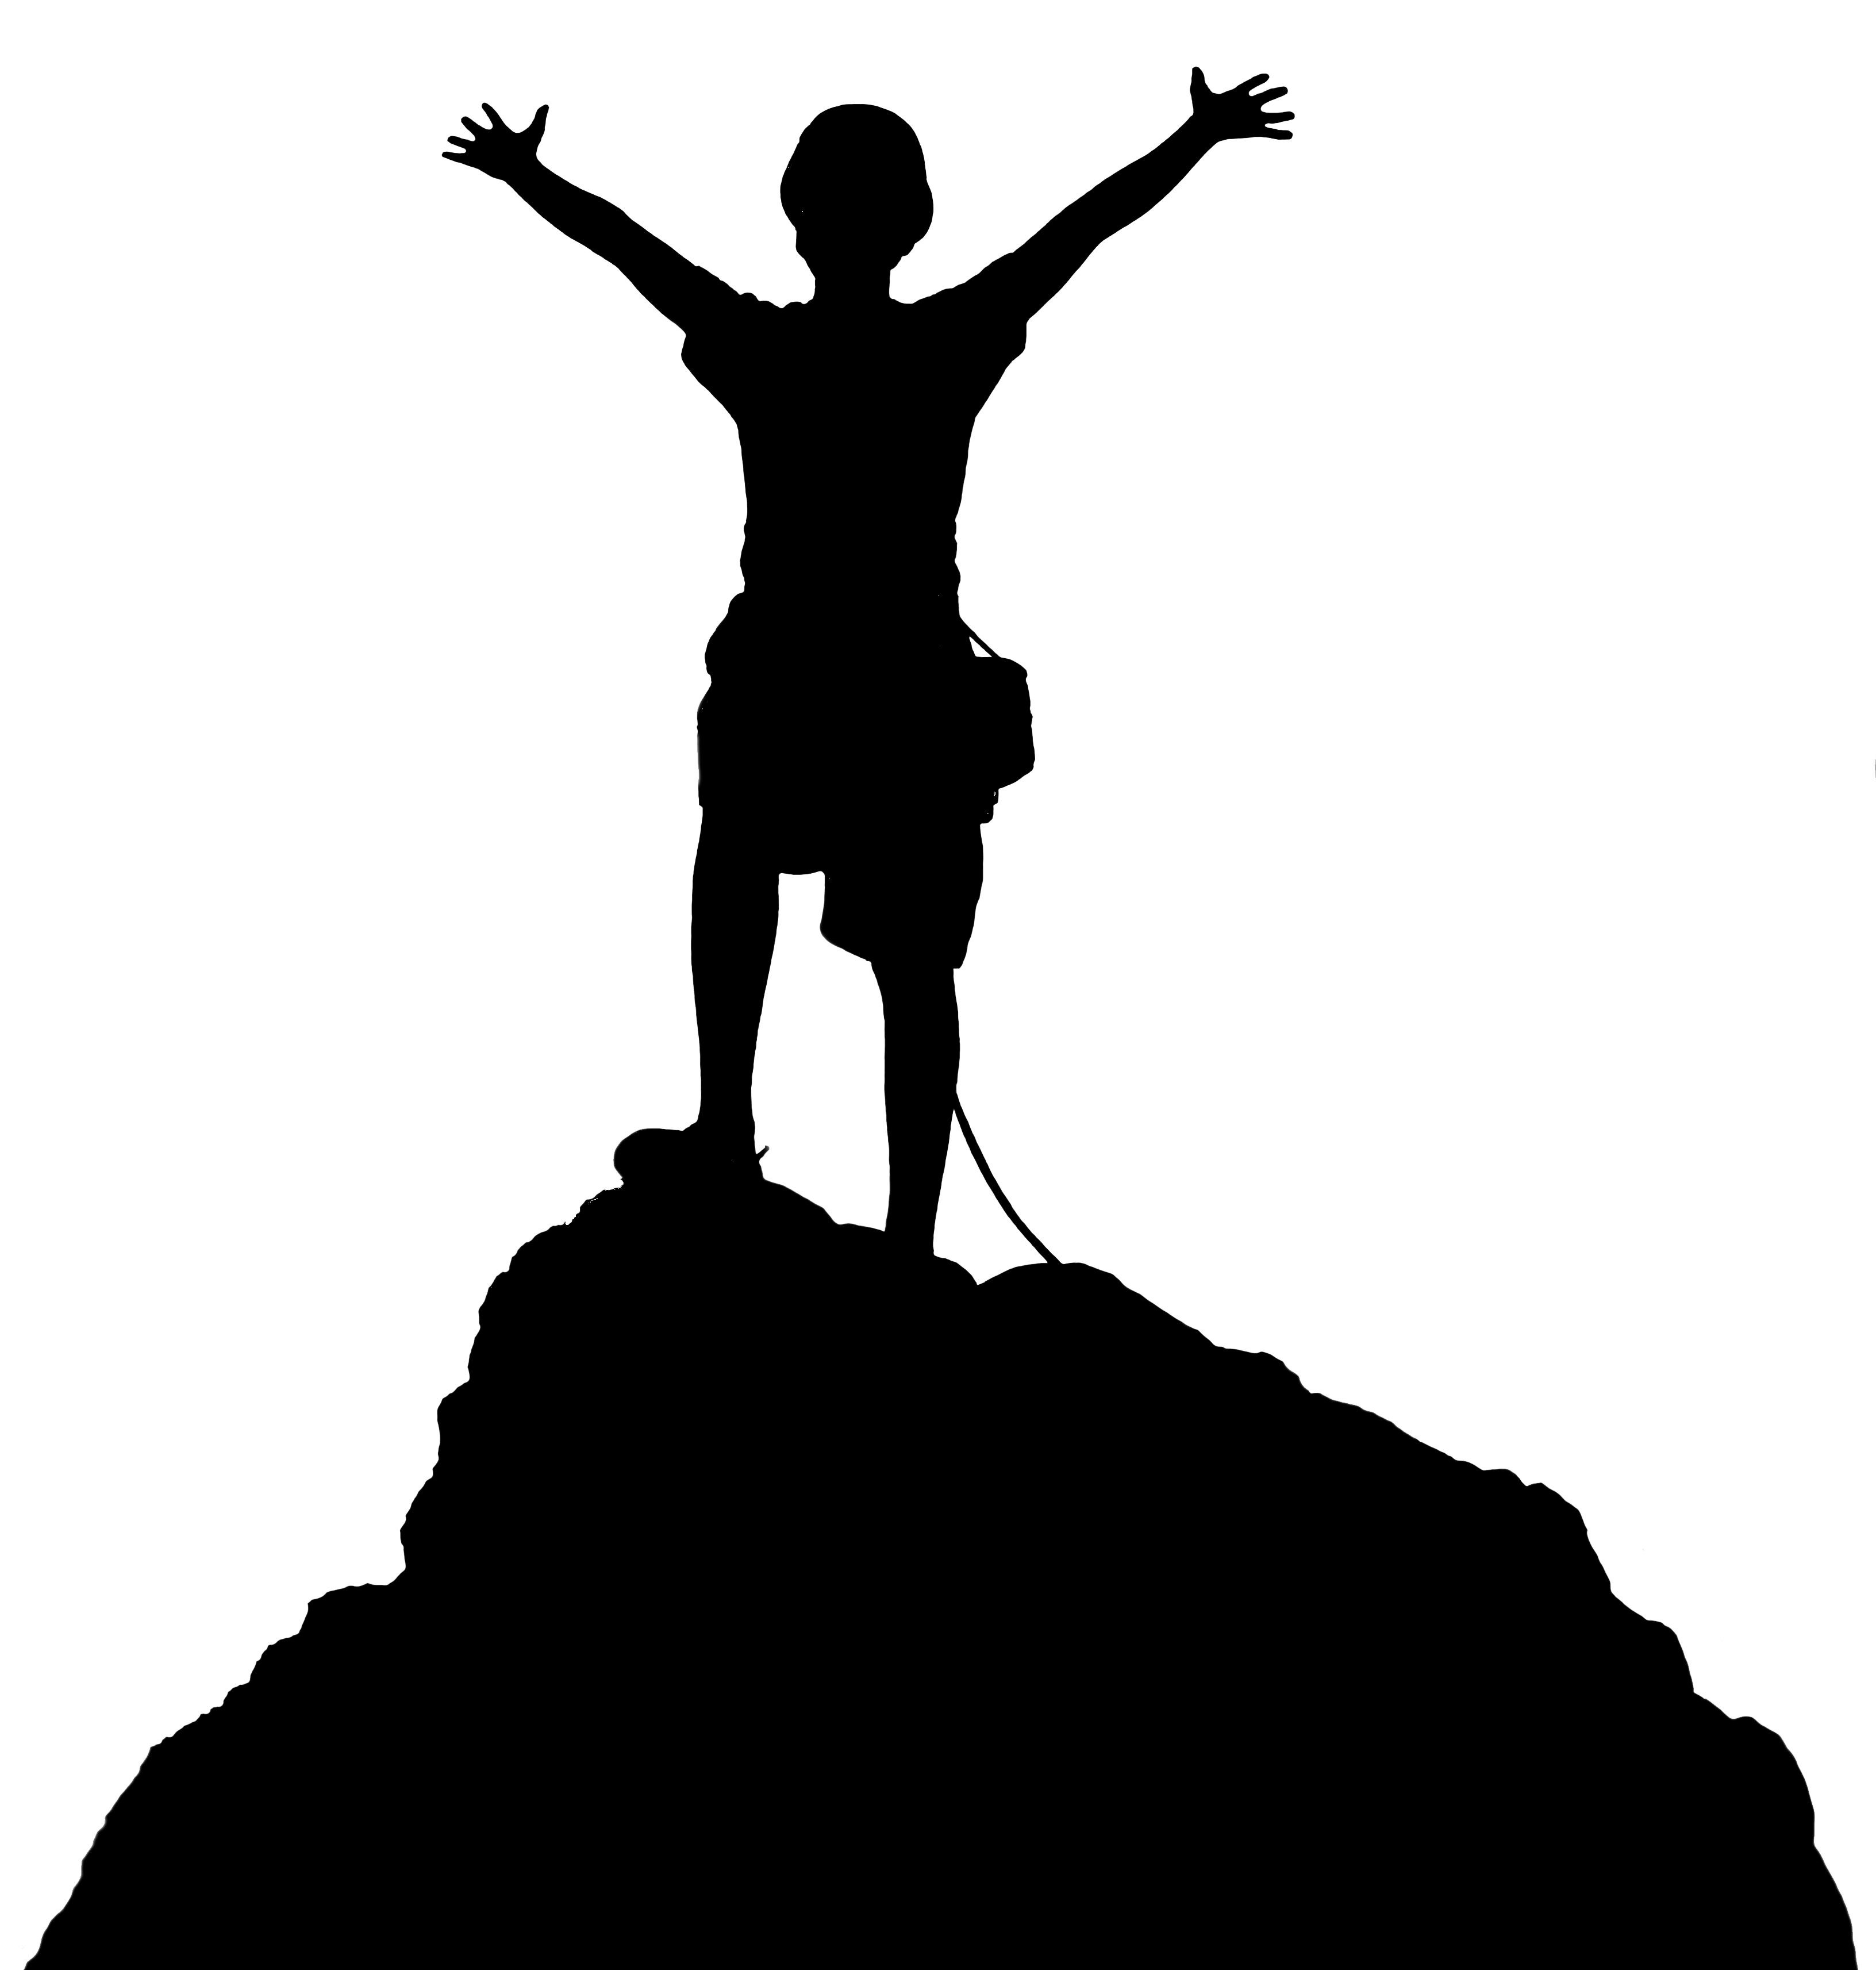 Wallpaper silhouette mountain climber summit free clipart png freeuse stock Mountain Climber Clipart   Free download best Mountain ... png freeuse stock